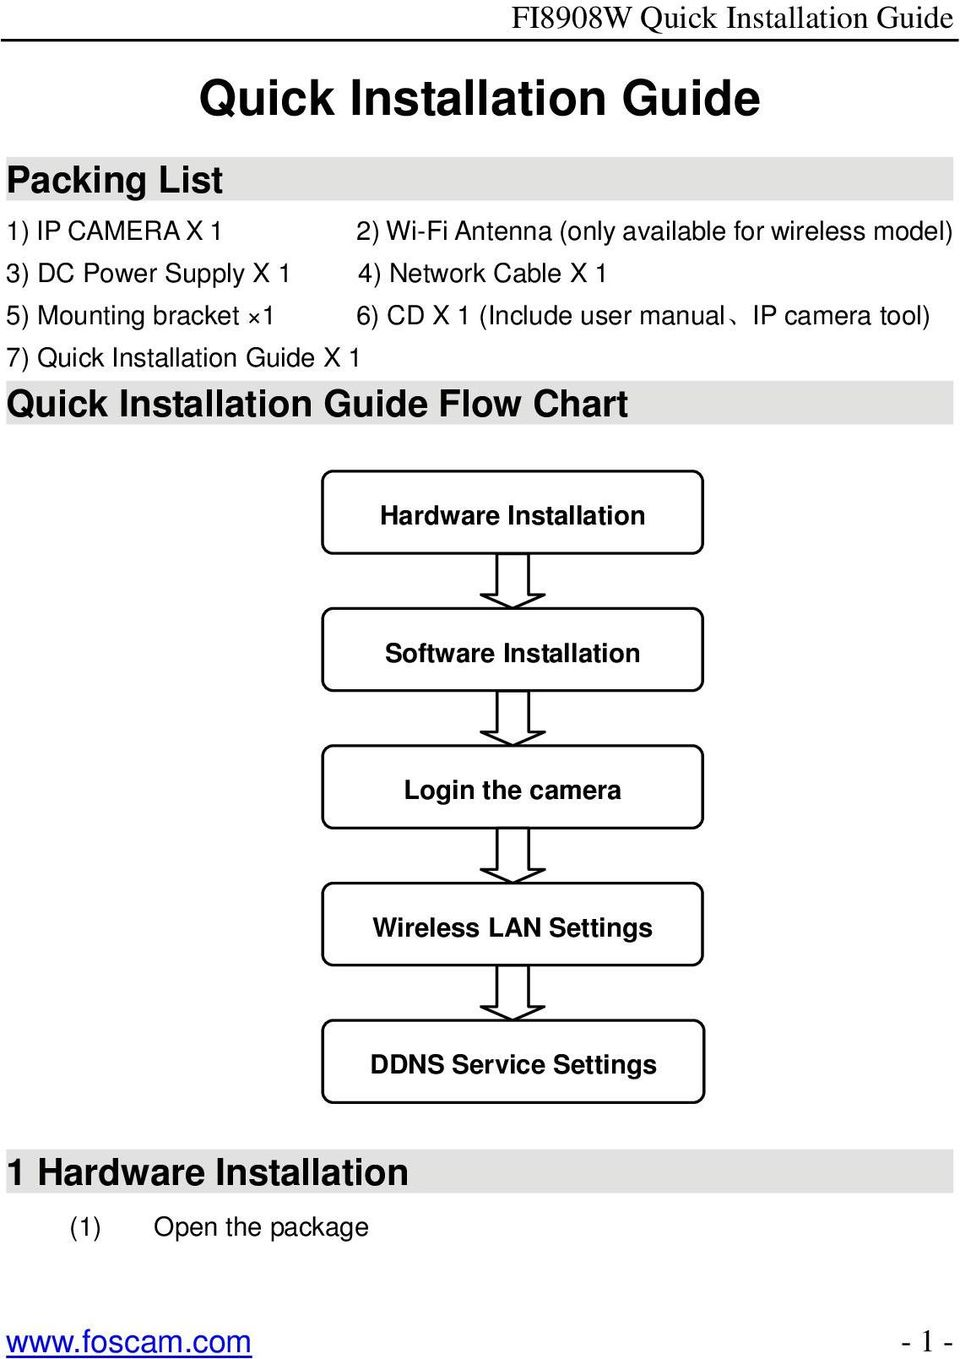 manual IP camera tool) 7) Quick Installation Guide X 1 Quick Installation Guide Flow Chart Hardware Installation